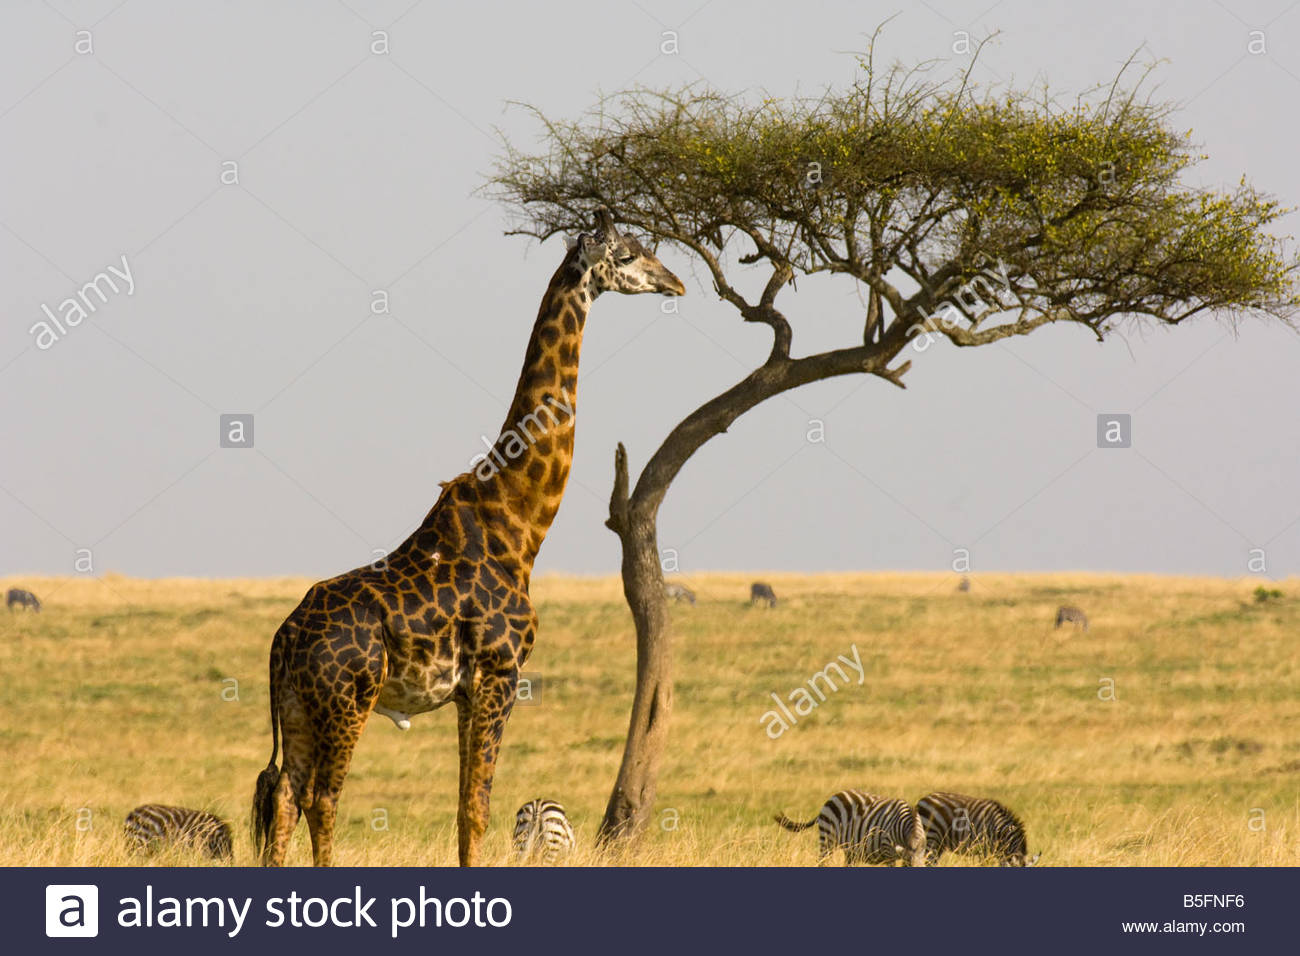 Giraffe and acacia tree Masai Mara National Reserve Kenya - Stock Image